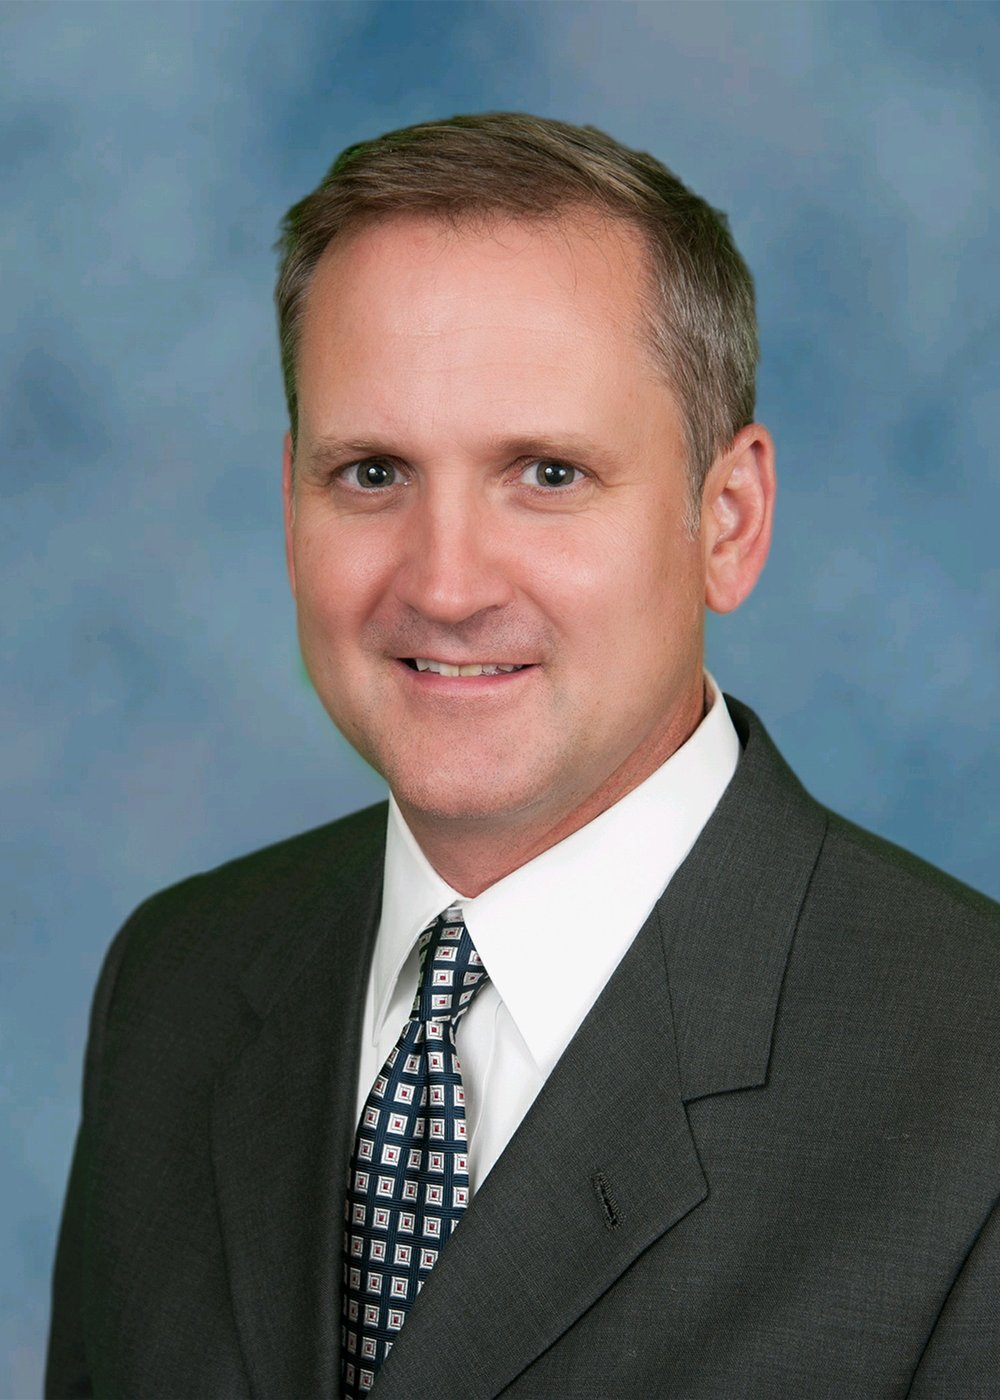 Brian Scholl, Orthopaedic Surgeon